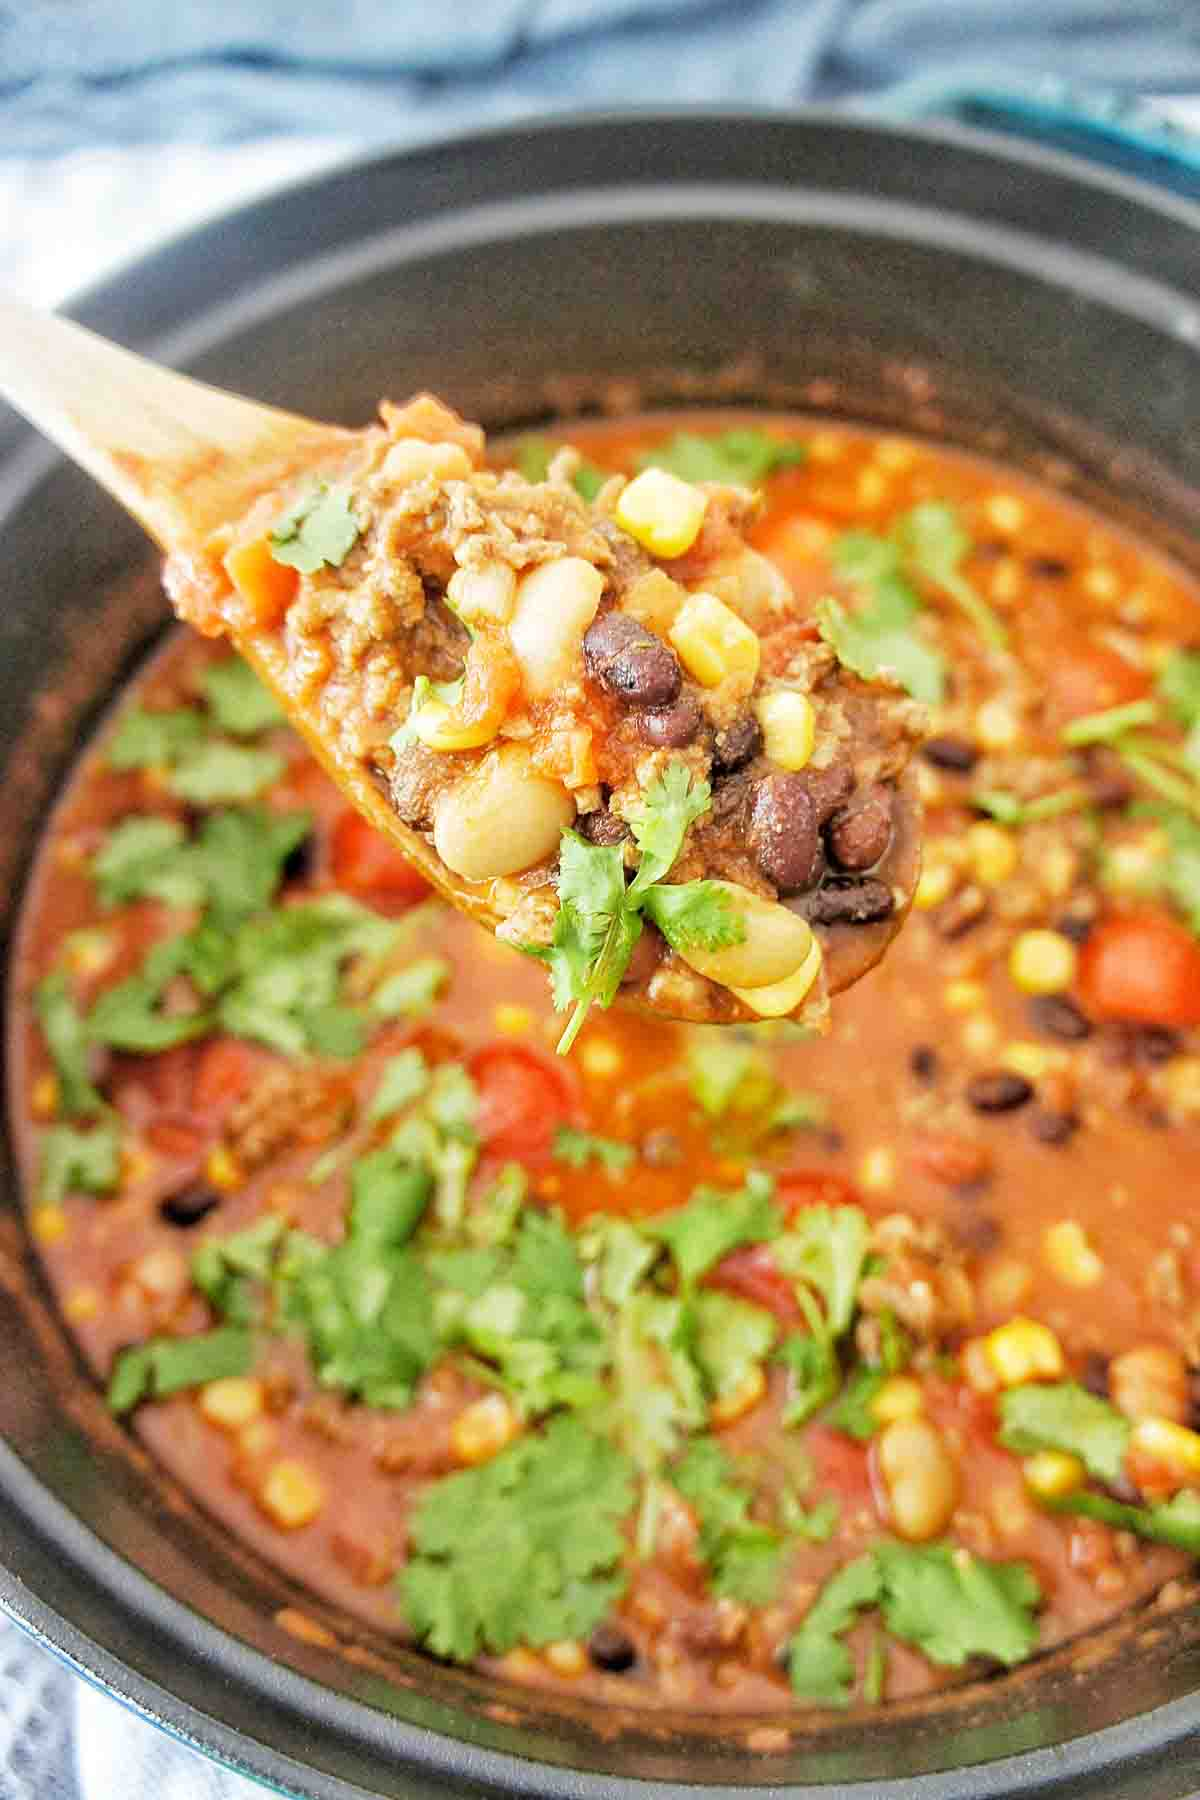 Spoon holding taco soup above a cast iron pot